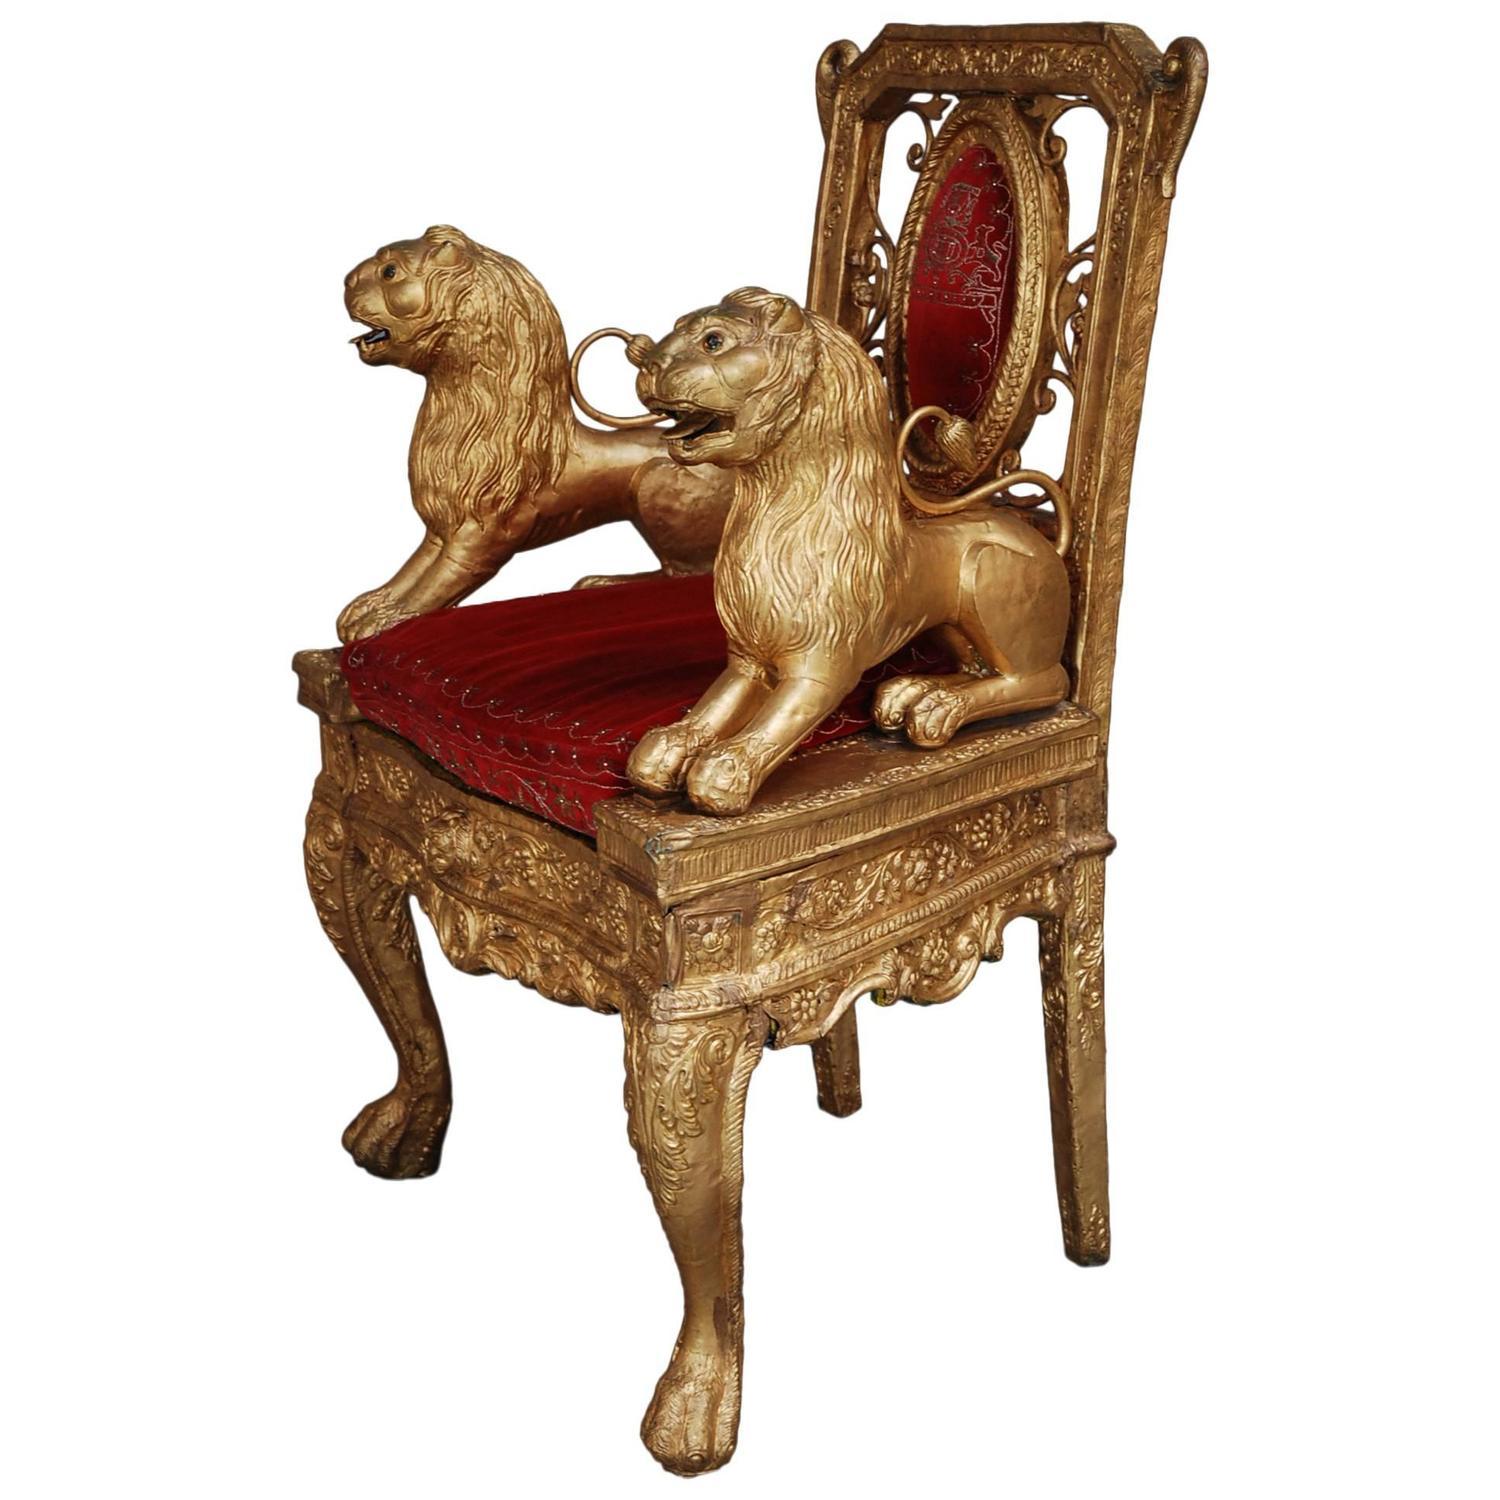 Mid Late 19th Century Indian Throne Chair with Gold Finish at 1stdibs